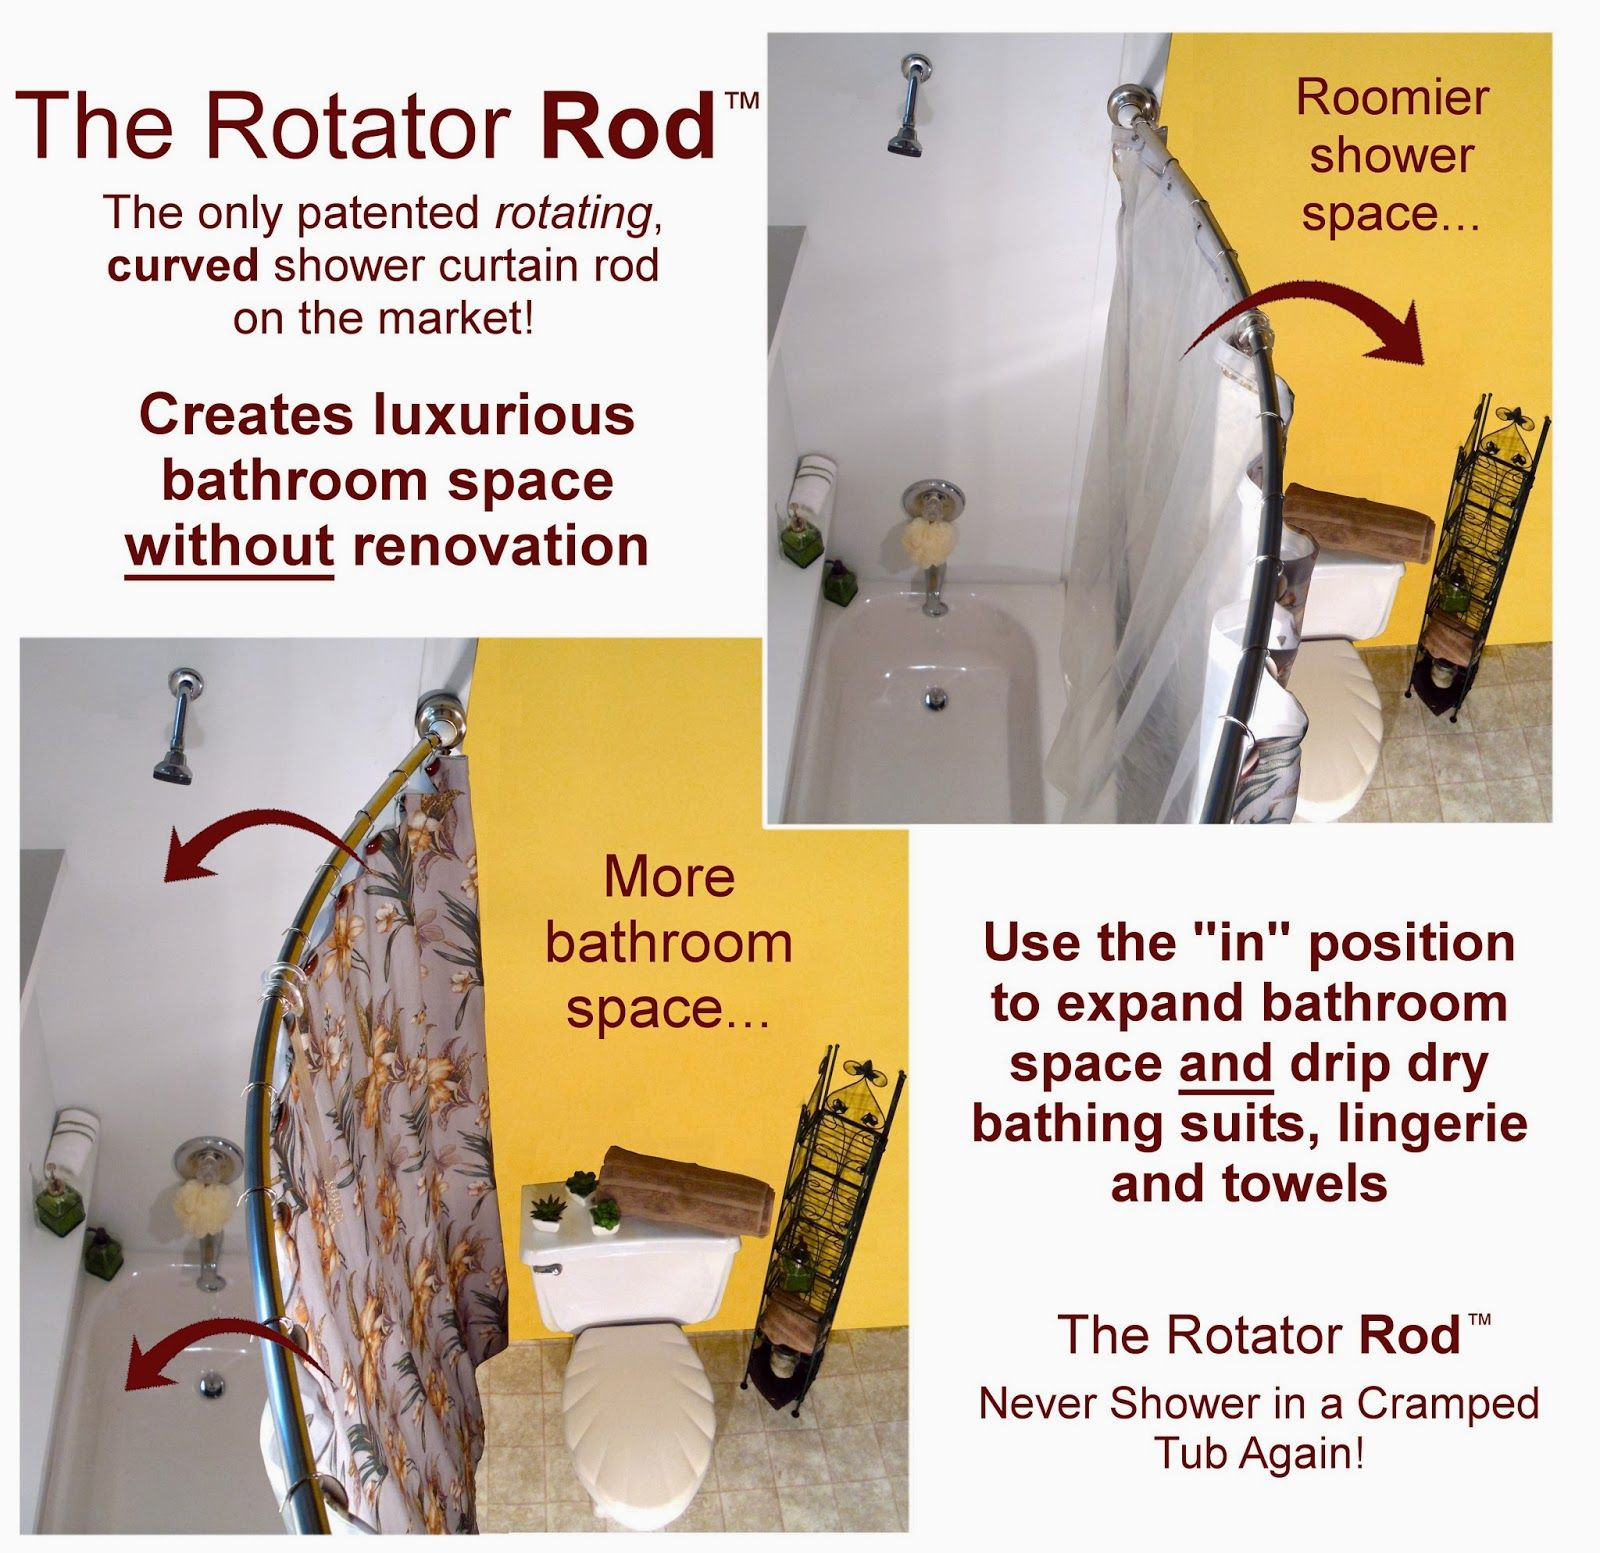 Curved Shower Curtain Rods Bring Luxury To Small Bathrooms